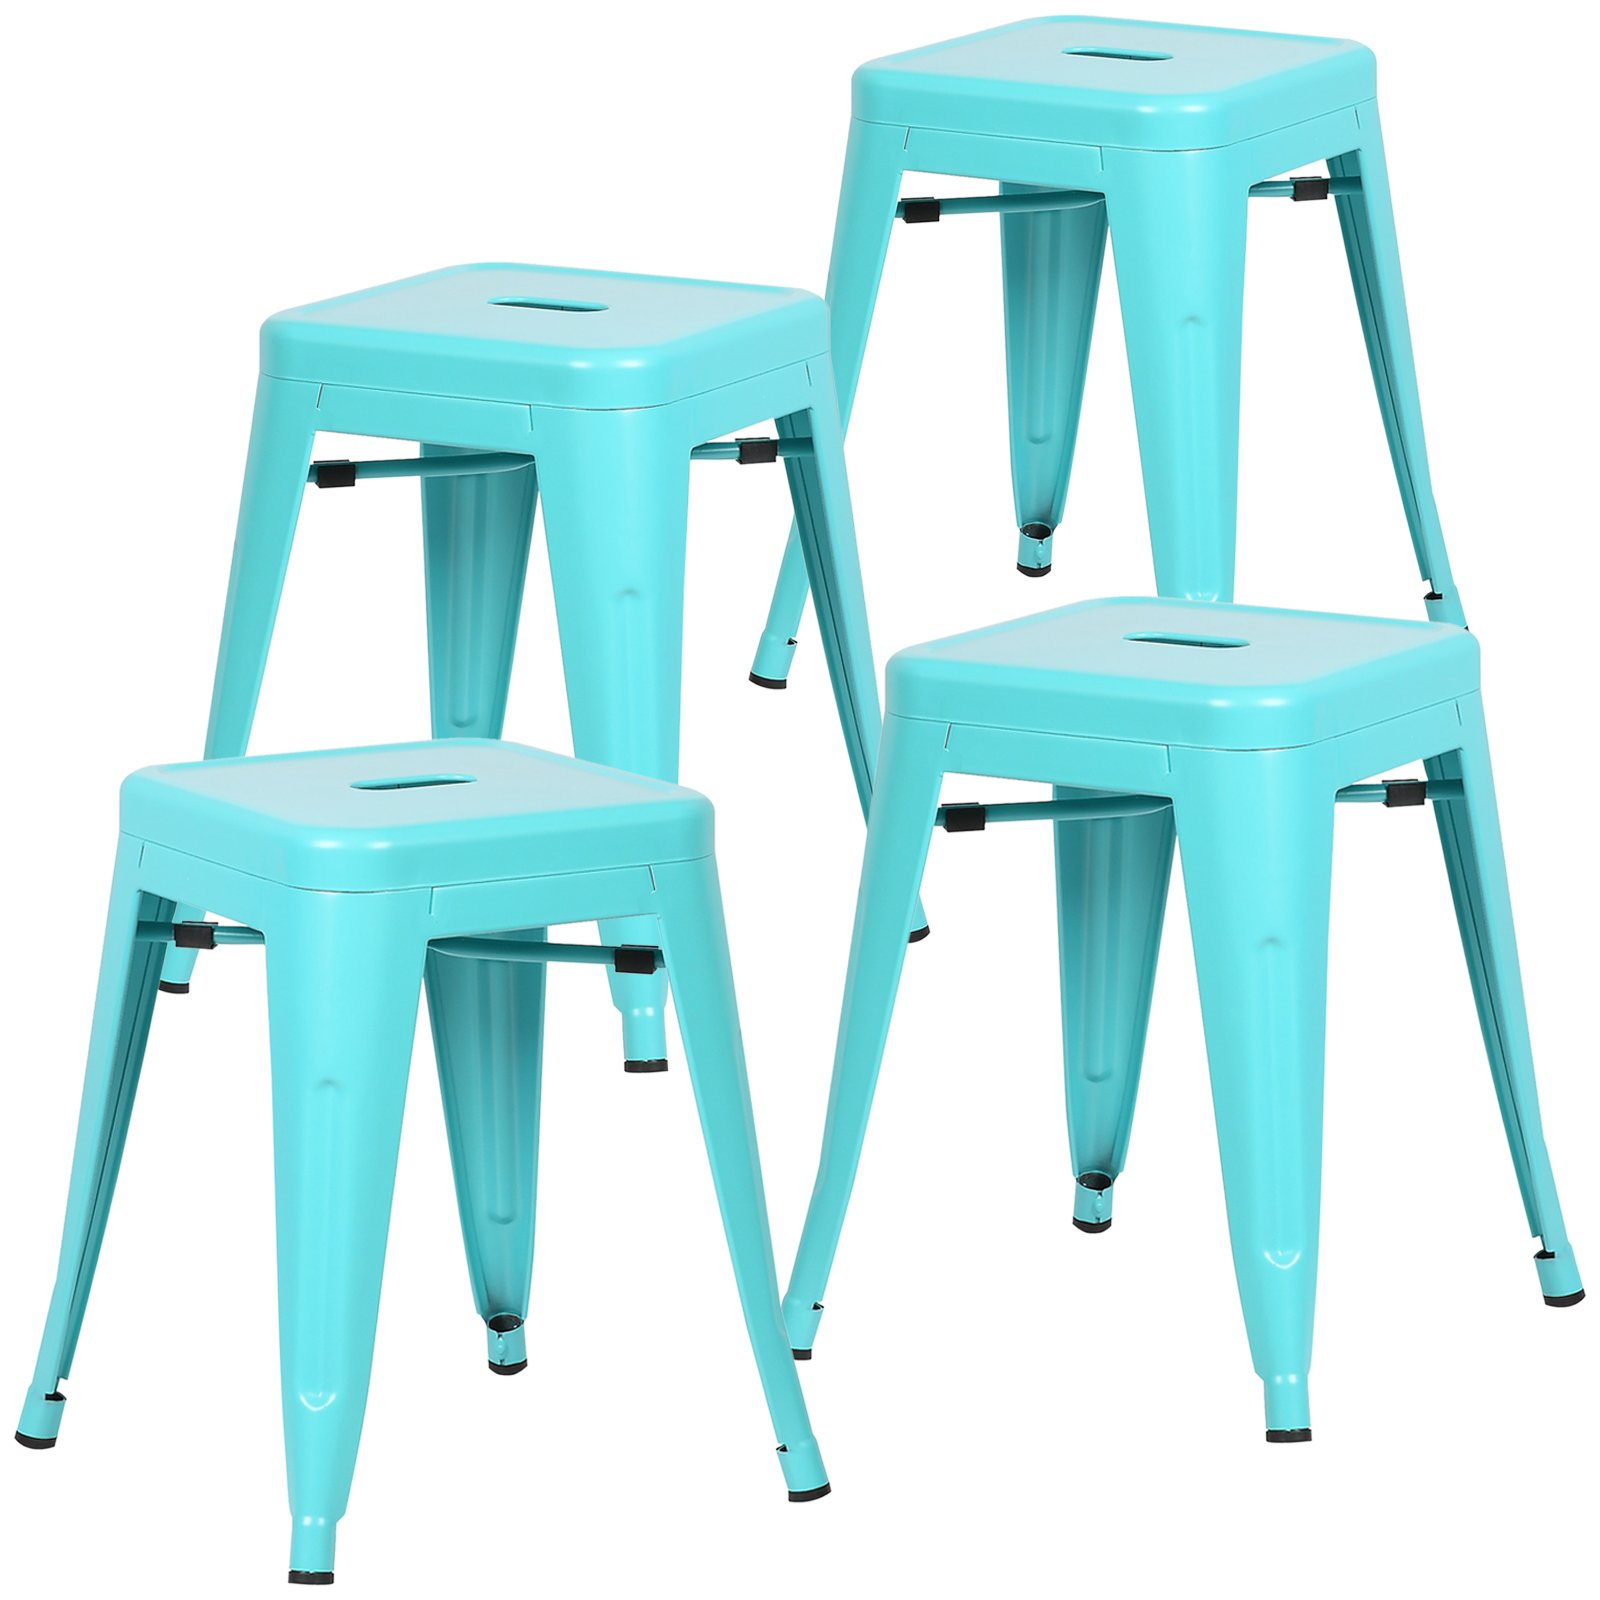 Poly and Bark Trattoria 18'' Stool in Aqua (Set of 4)